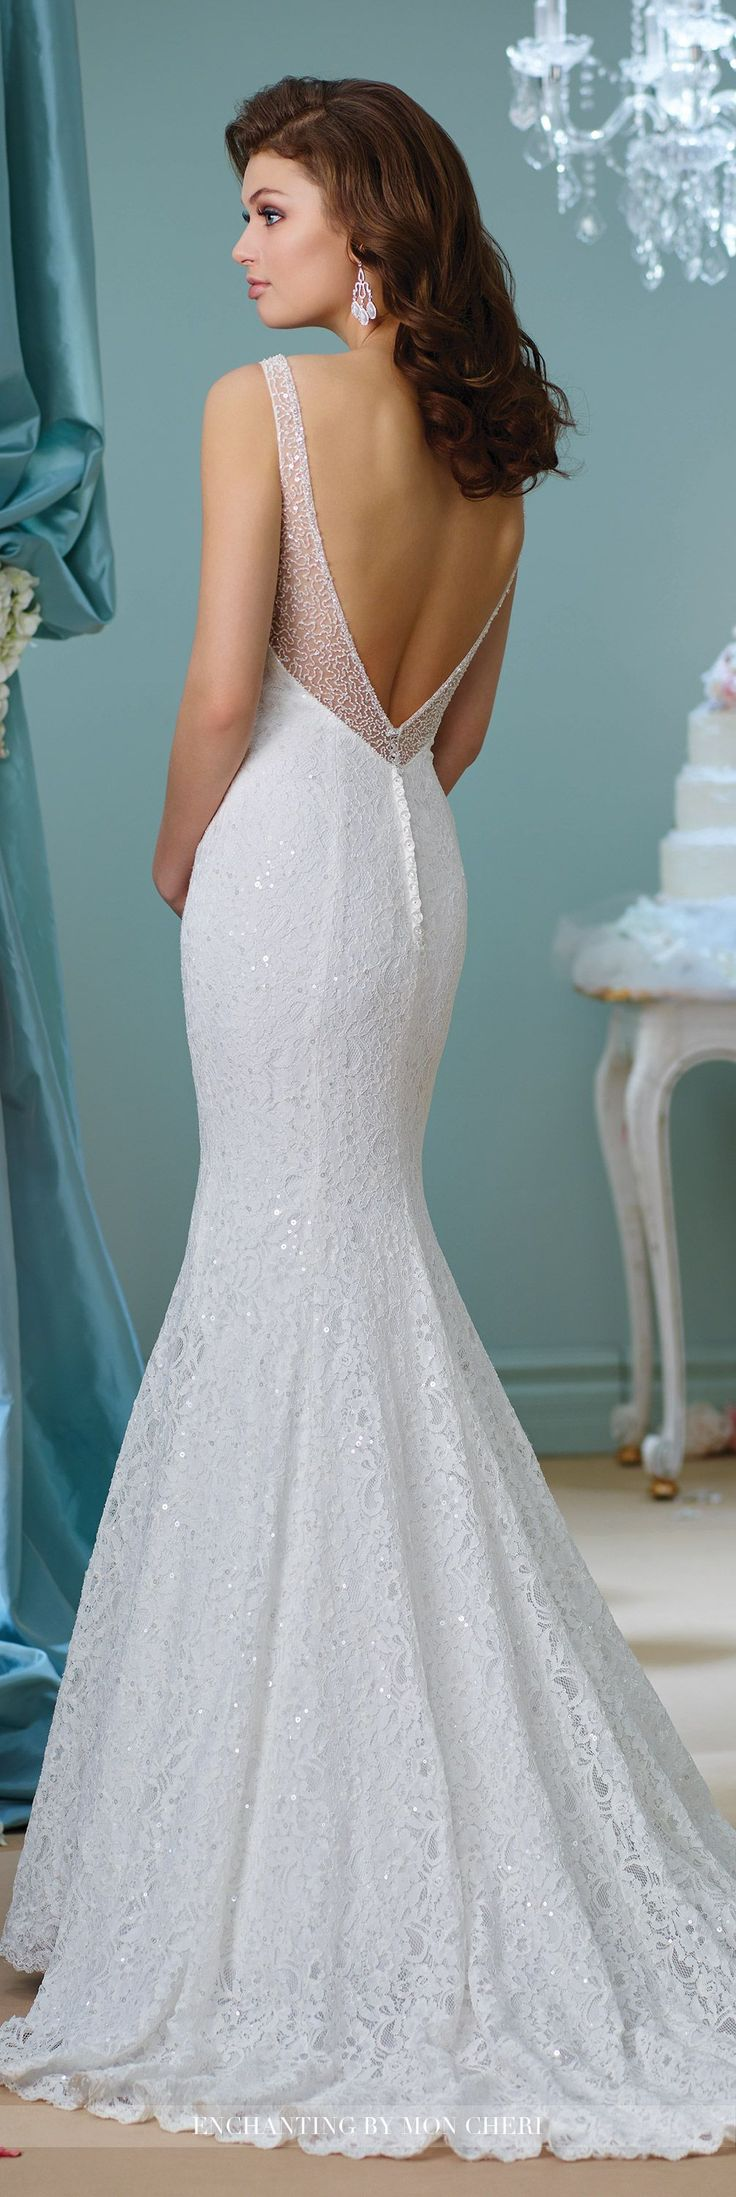 Enchanting by Mon Cheri Fall 2016 Wedding Gown Collection - Style No. 216154 -sleeveless lace and sequin fit and flare wedding dress